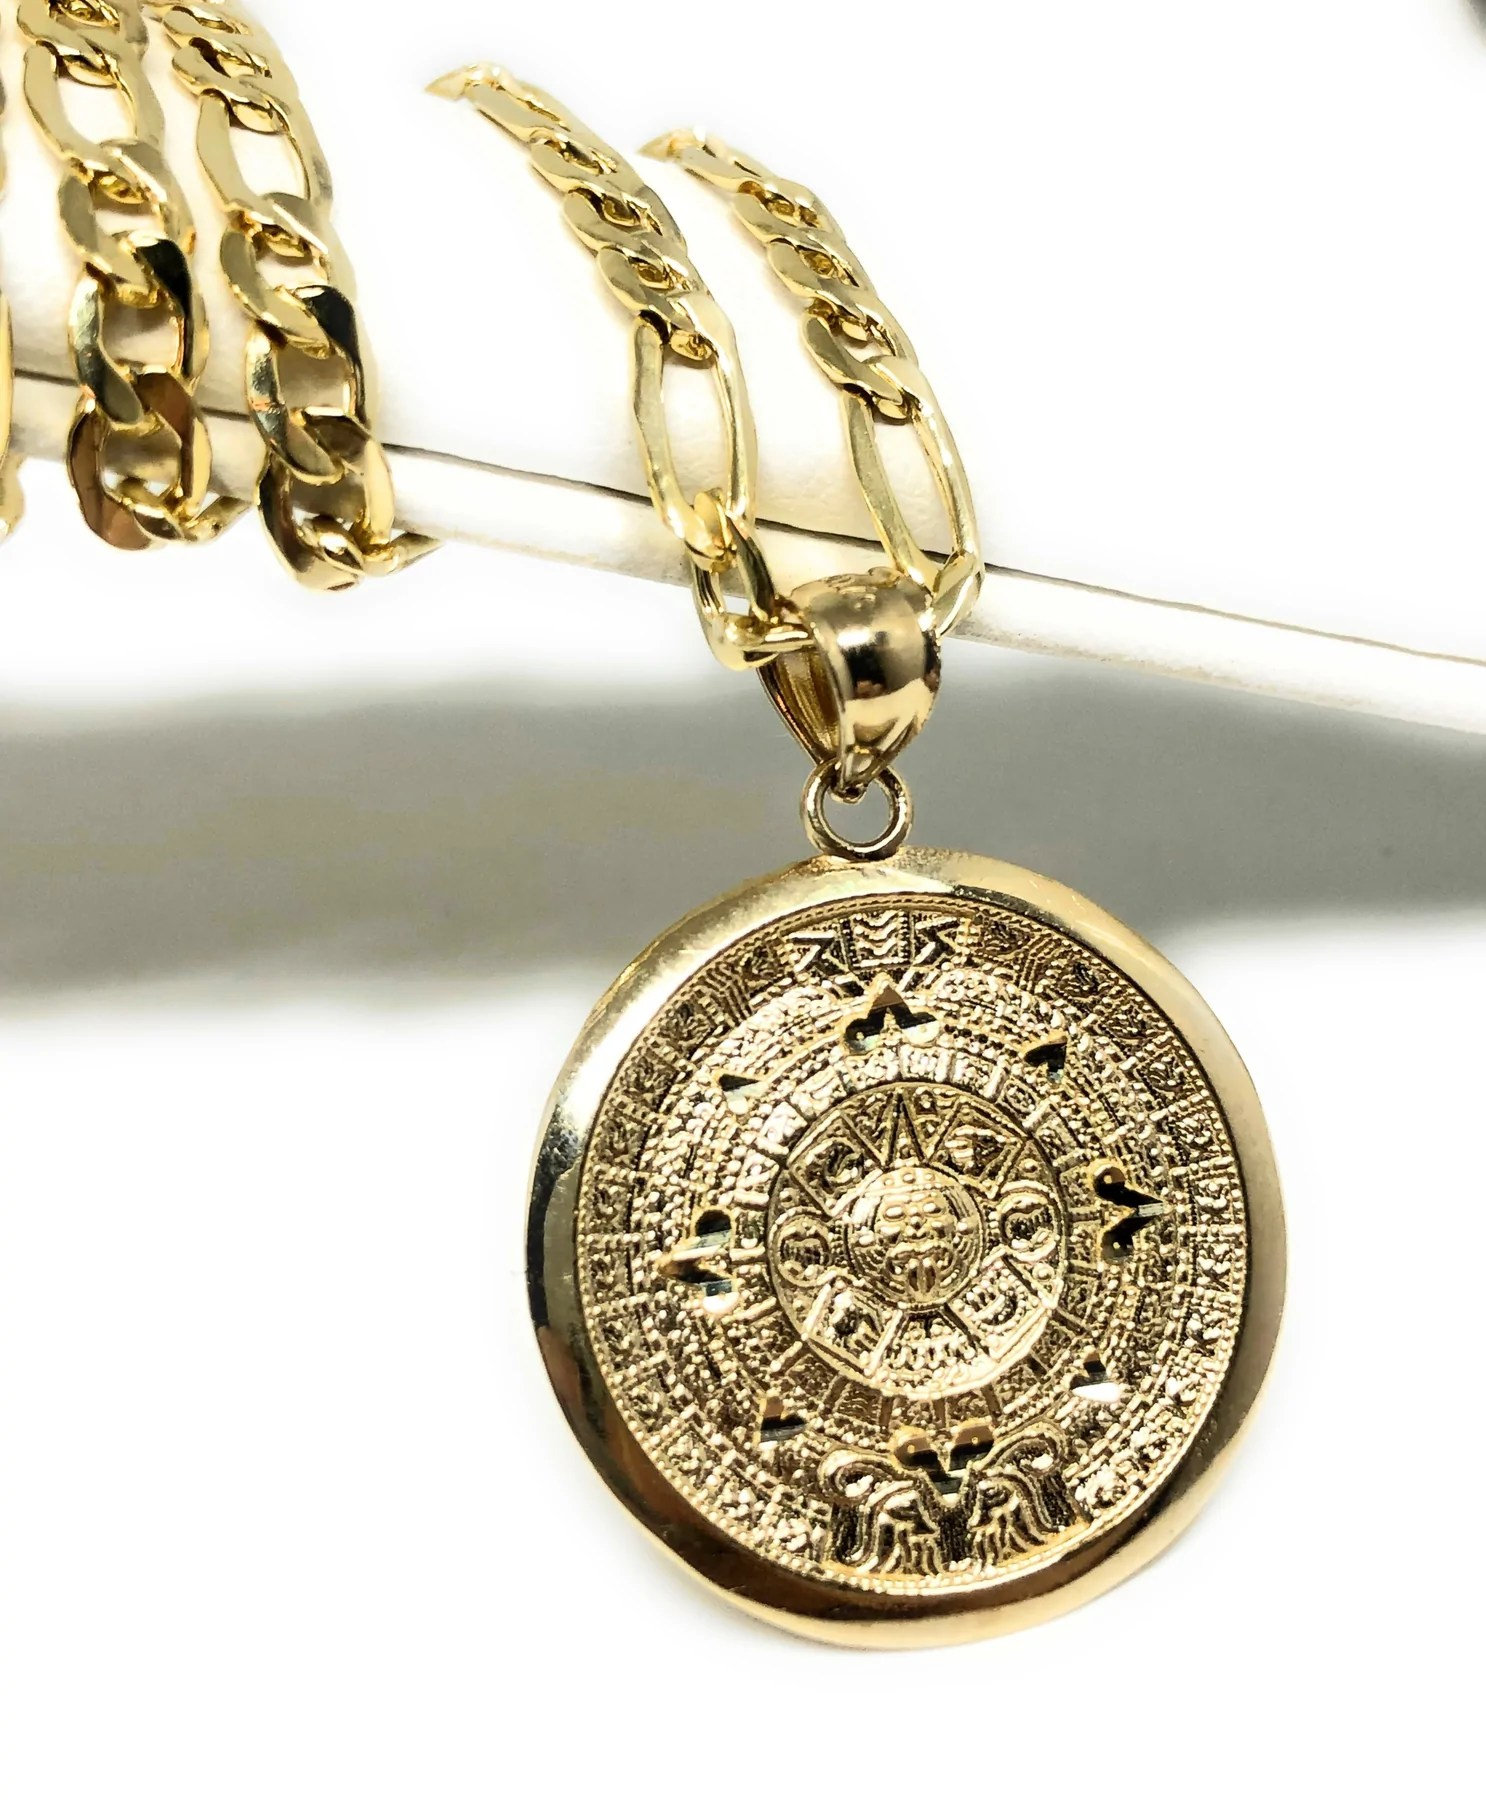 Mexican Gold Chains : mexican, chains, Solid, Yellow, Mexican, Aztec, Calendar, Pendant, Necklace, Jewelry